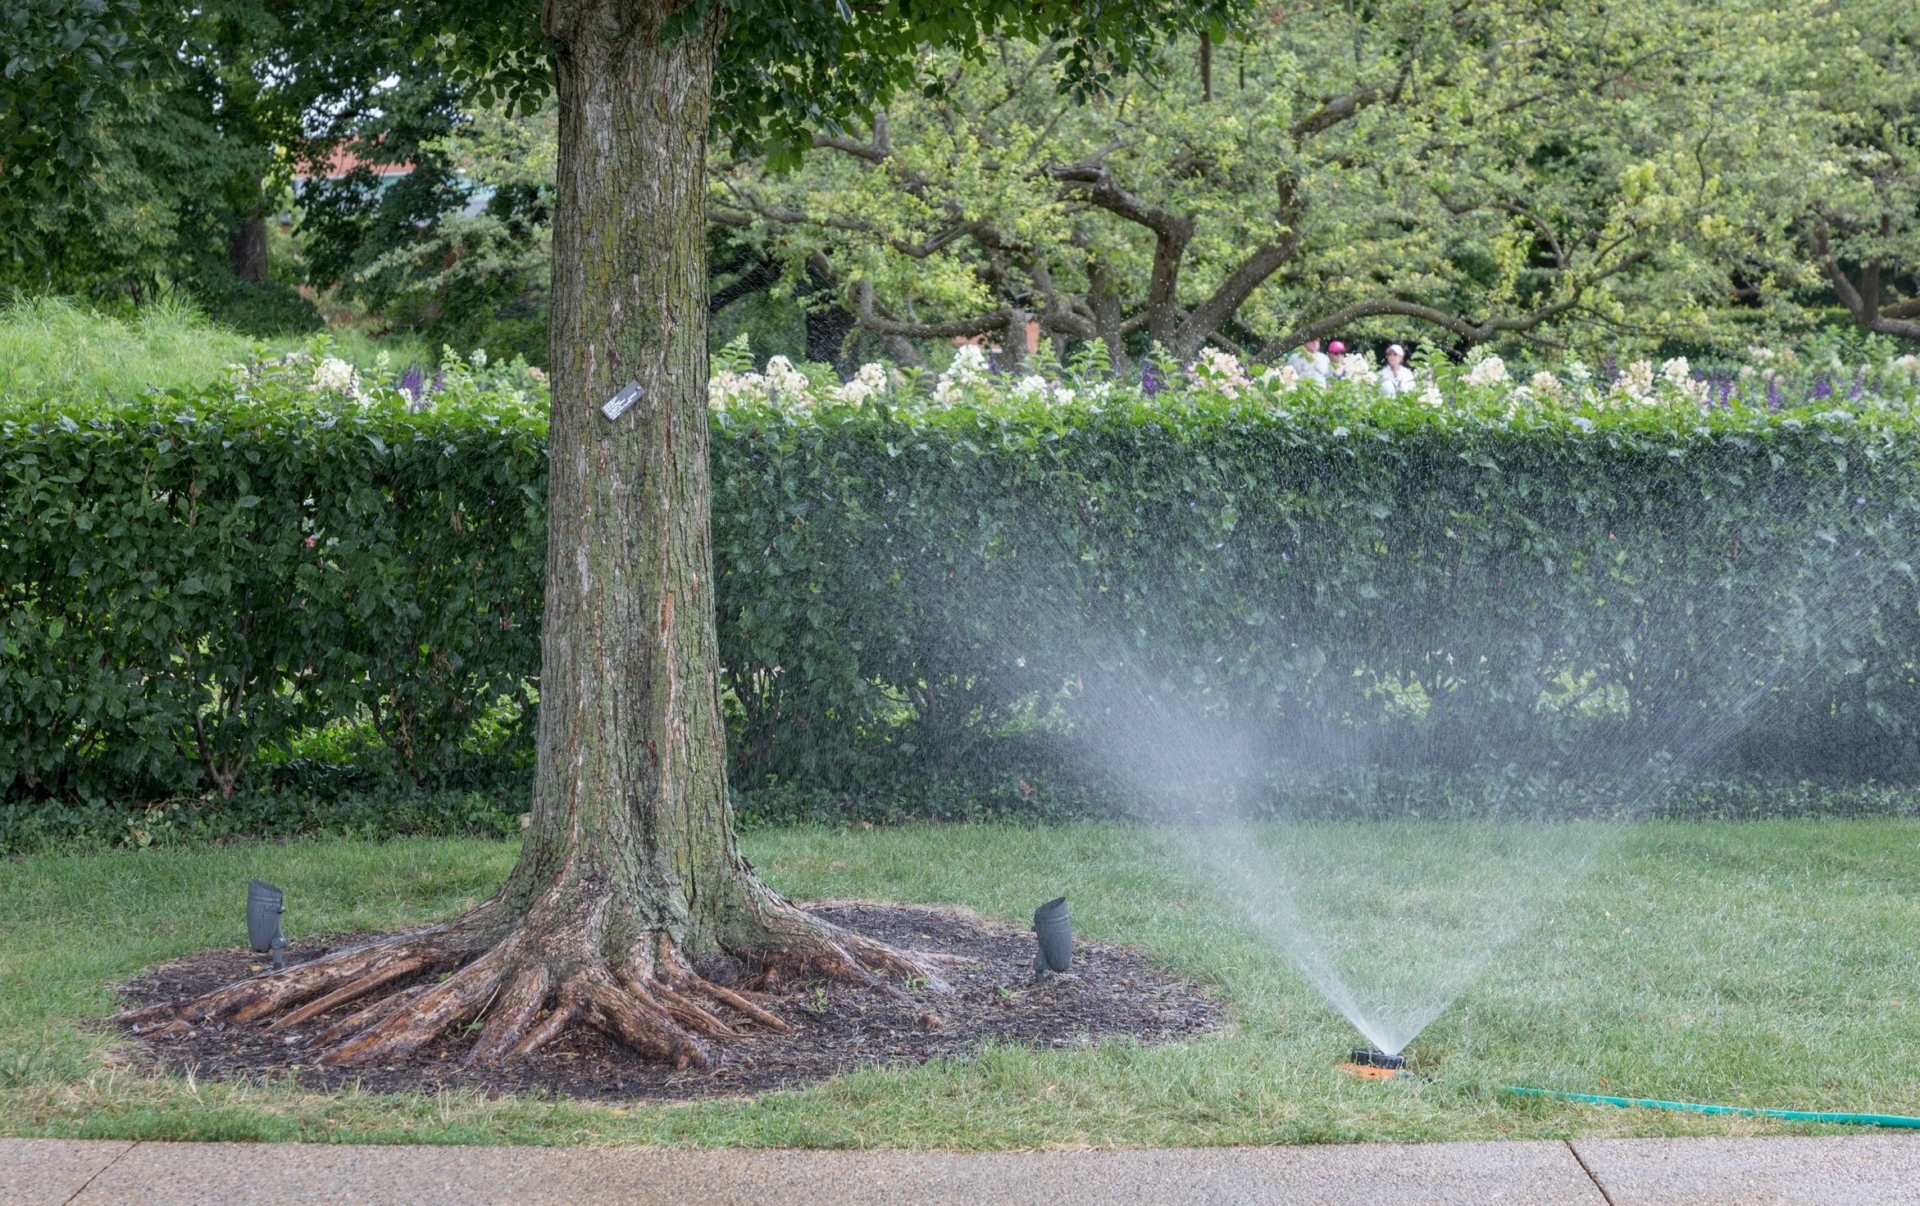 A tree being watered by a sprinkler.